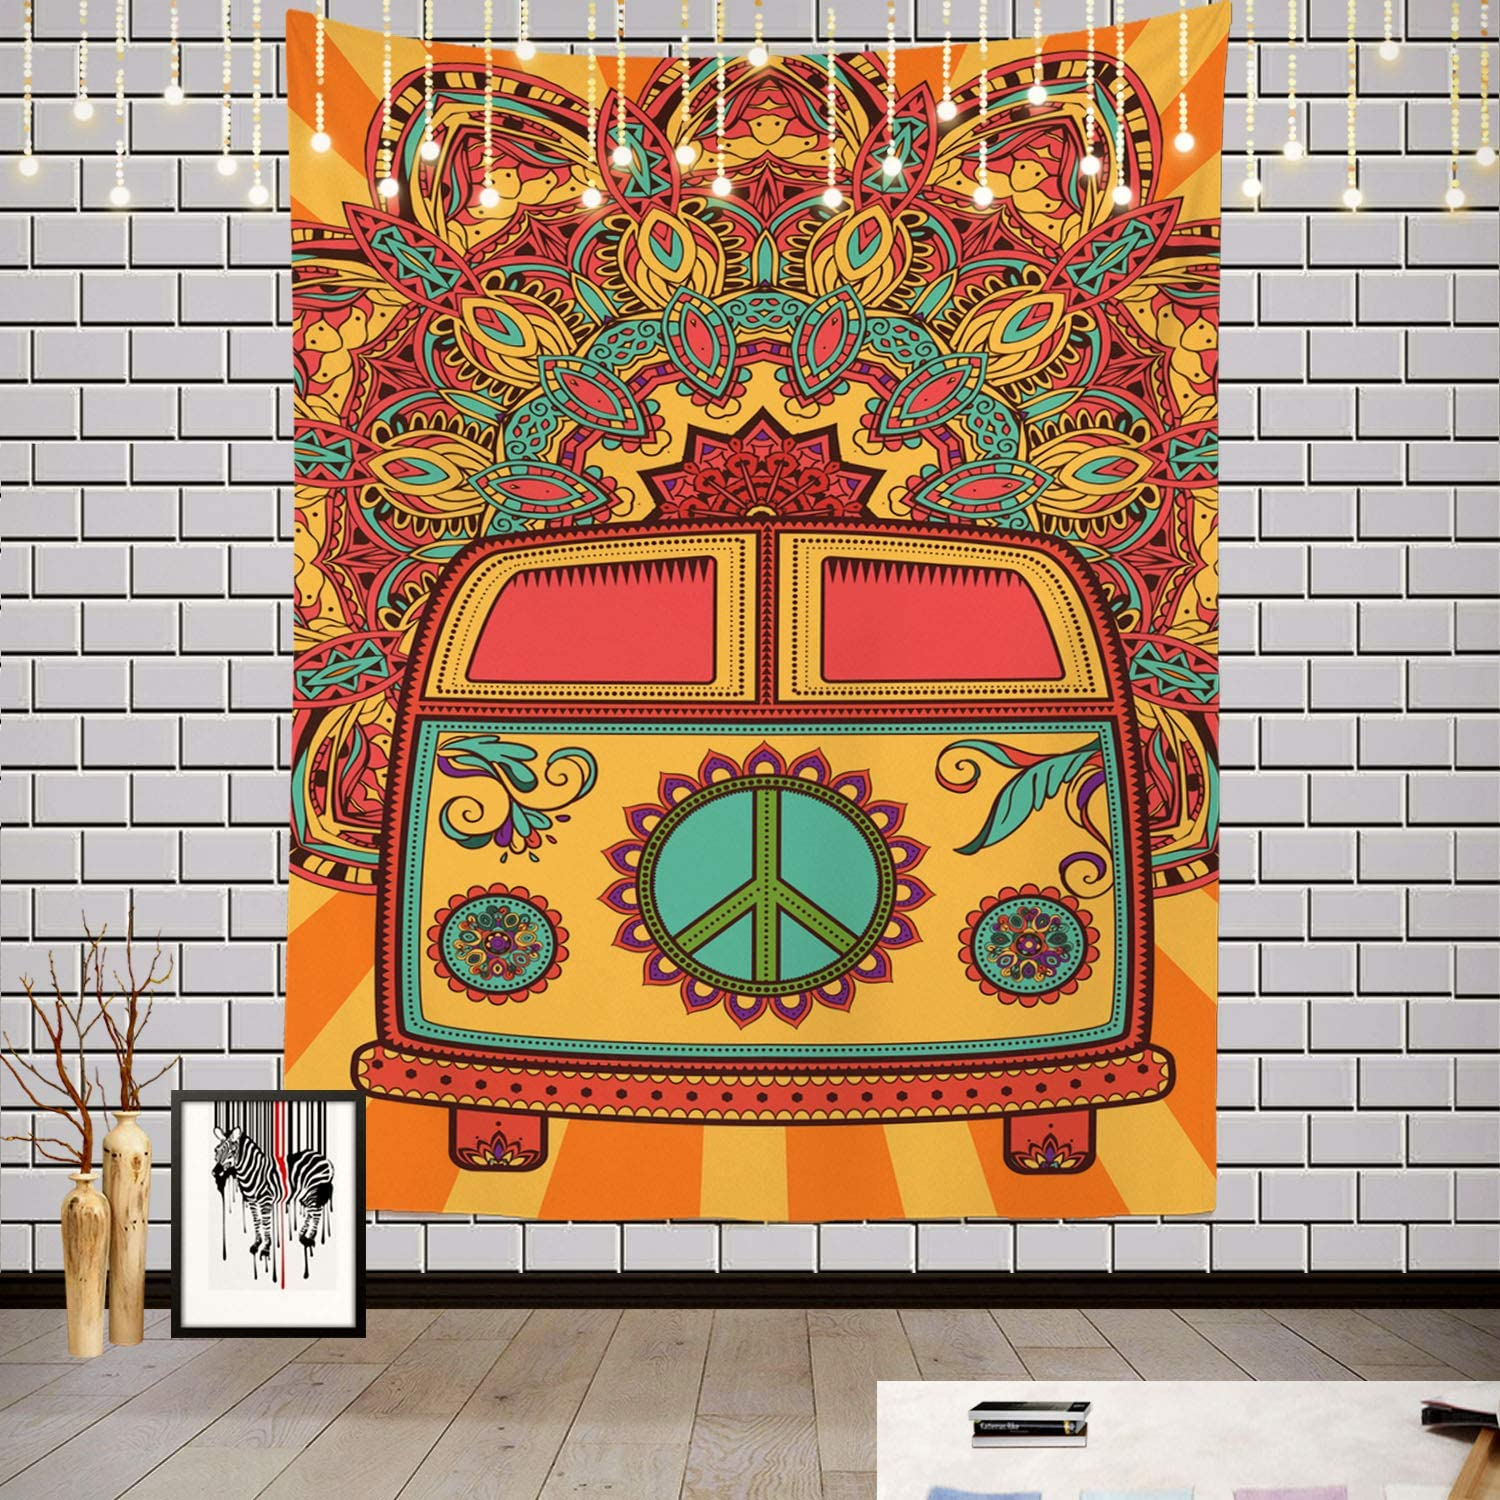 Batmerry Hippie Vintage Car Love Tapestry, Flower Power Retro Peace Love Hippie Symbols Picnic Mat Hippie Trippy Tapestry Wall Art Decor for Bedroom Living Room, 82.7 x 59.1 Inches, Floral 1